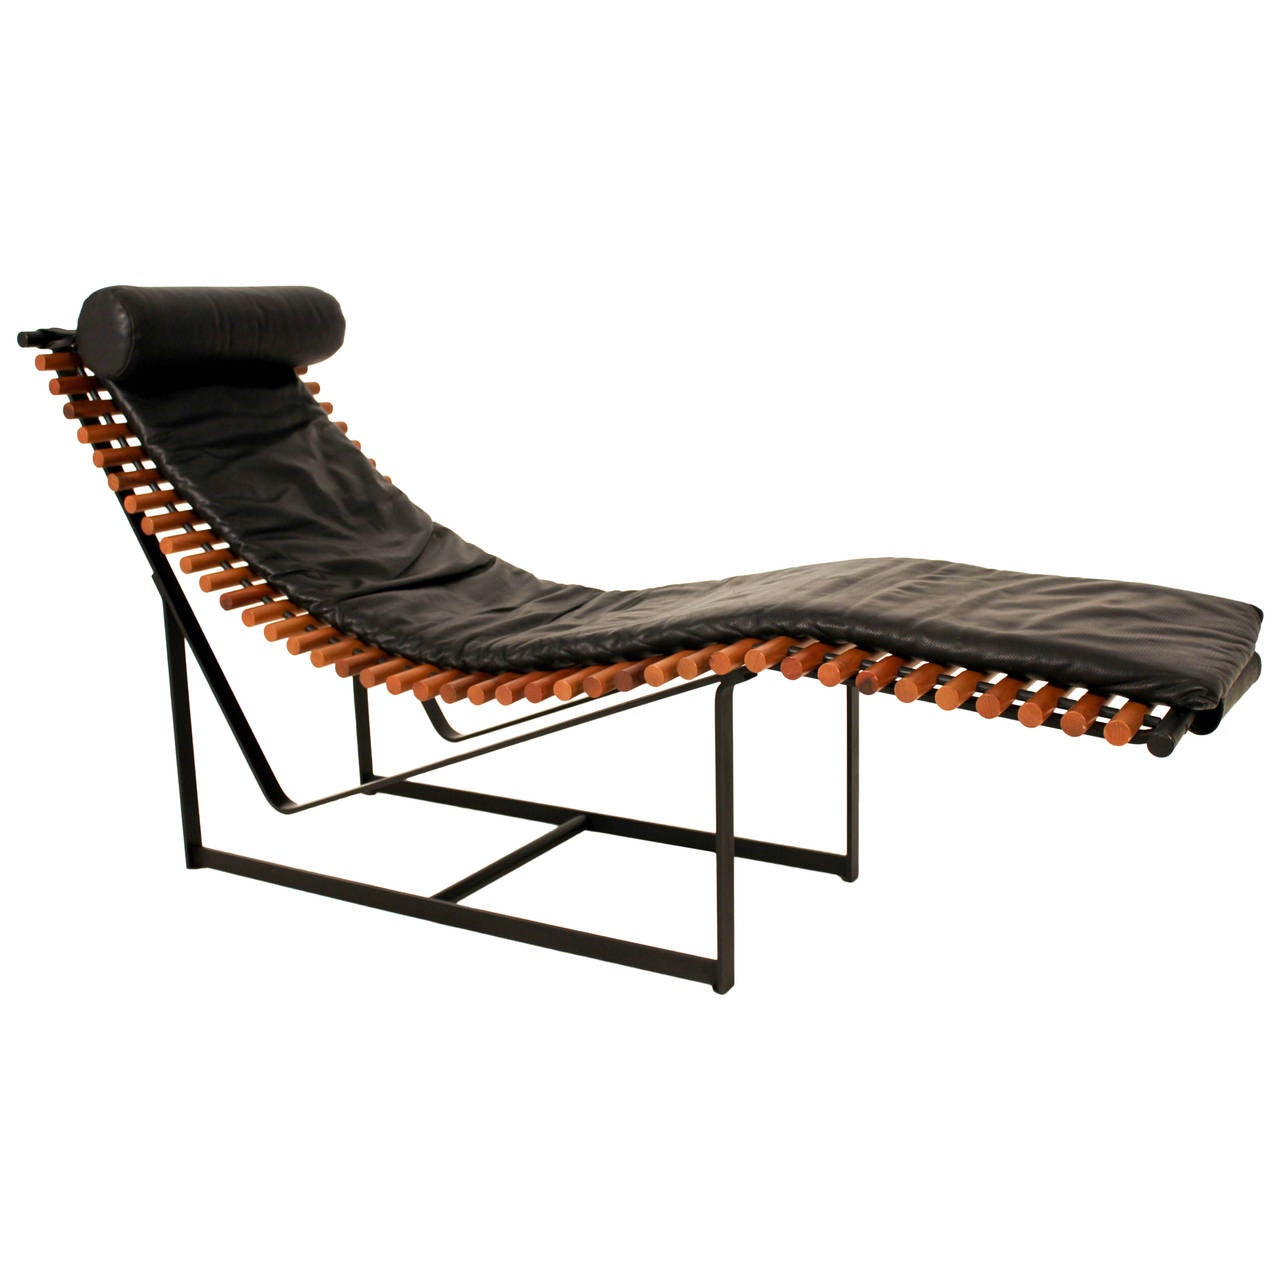 Funky mid century modern chaise longue 1970s for sale at for Chaise longue moderne